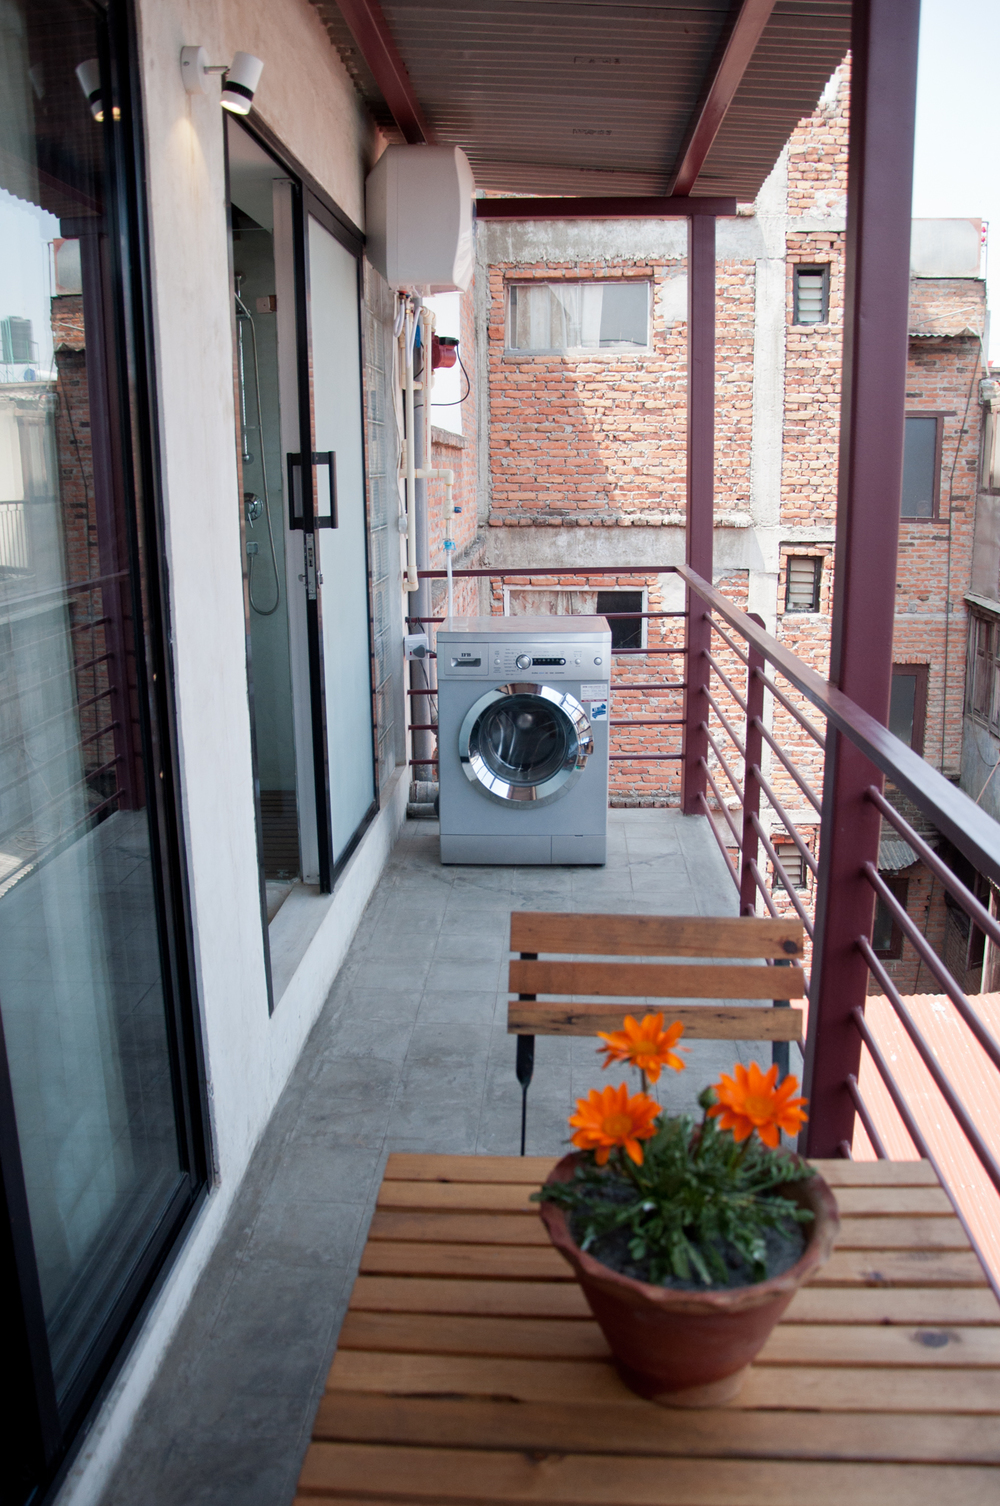 Bedroom's balcony and your own washing machine